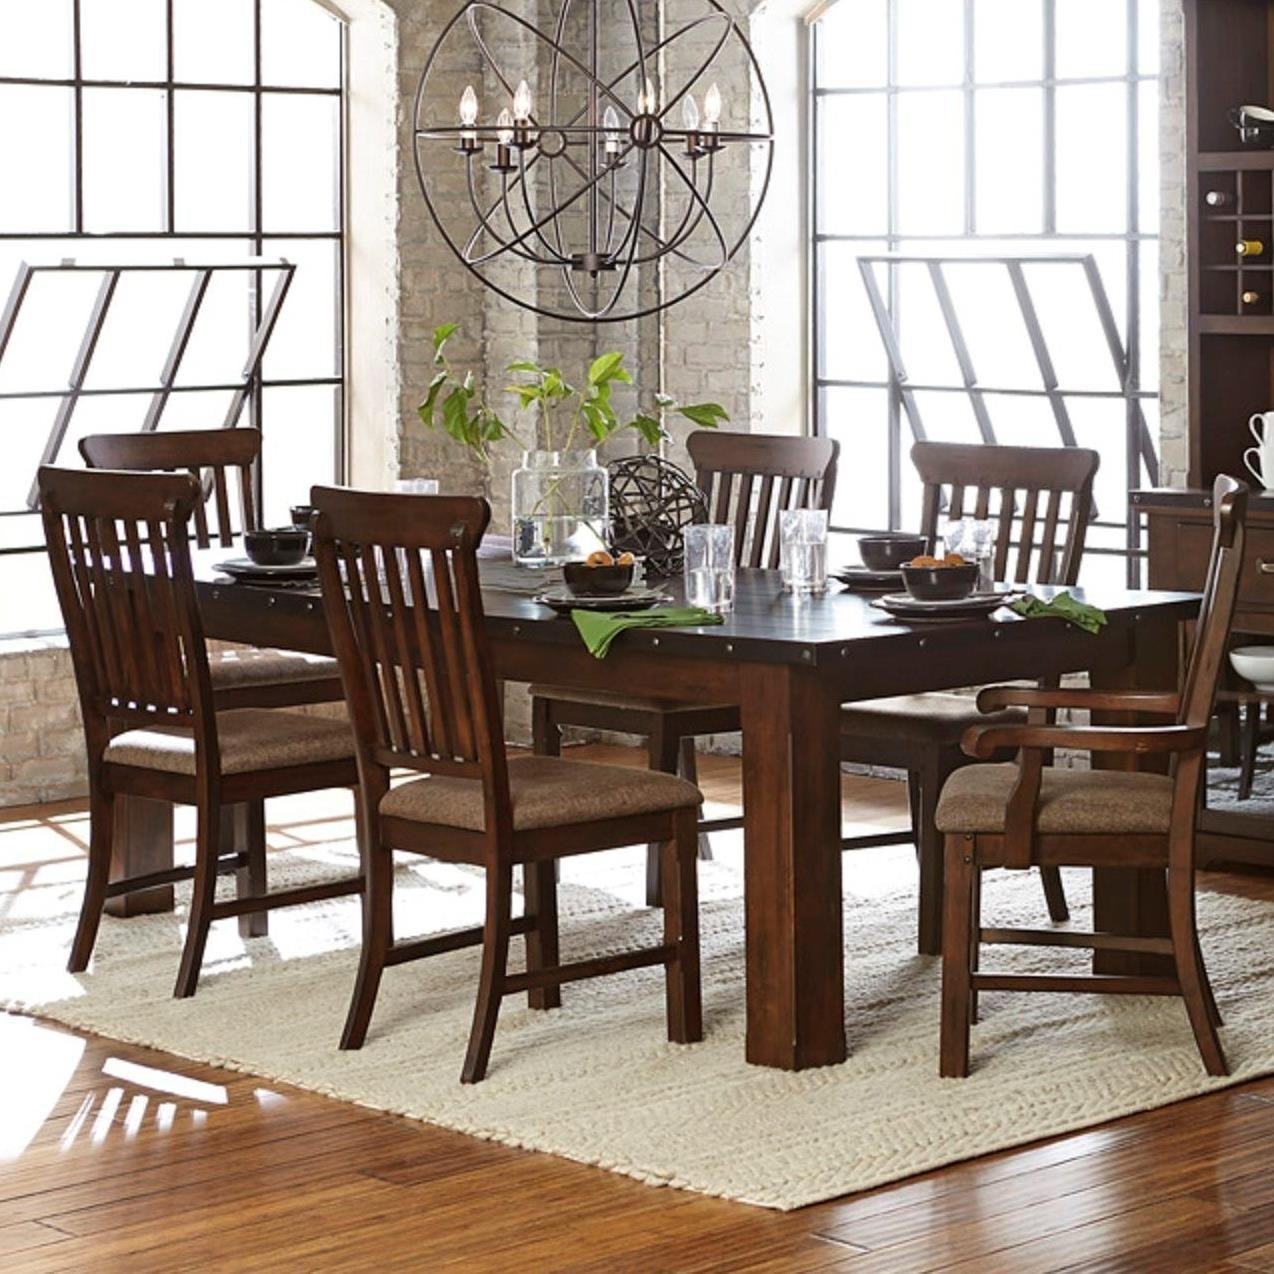 Schleiger Industrial Table and Chair Set by